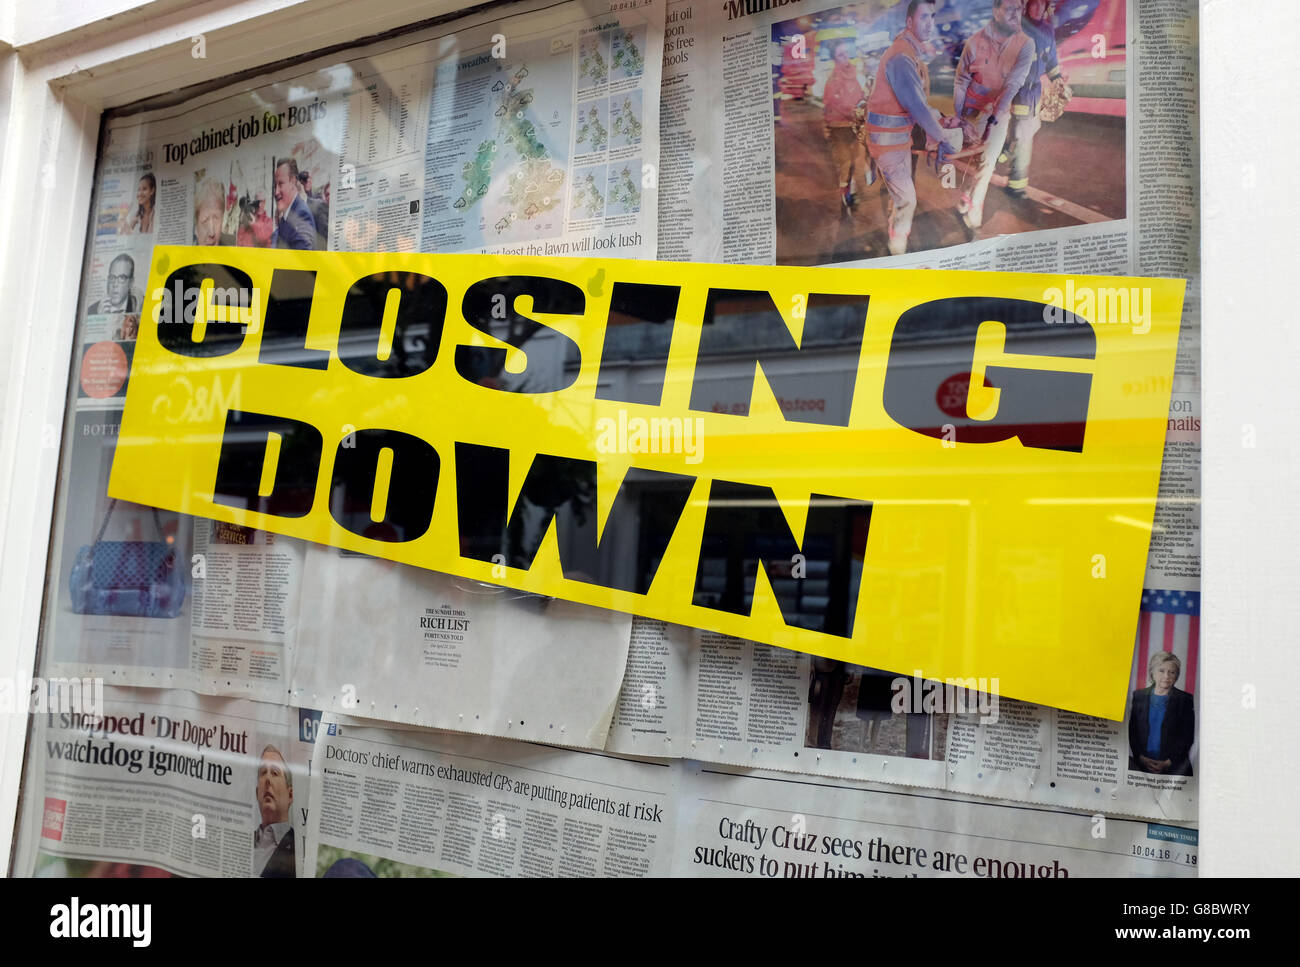 closing down sign in shop window - Stock Image